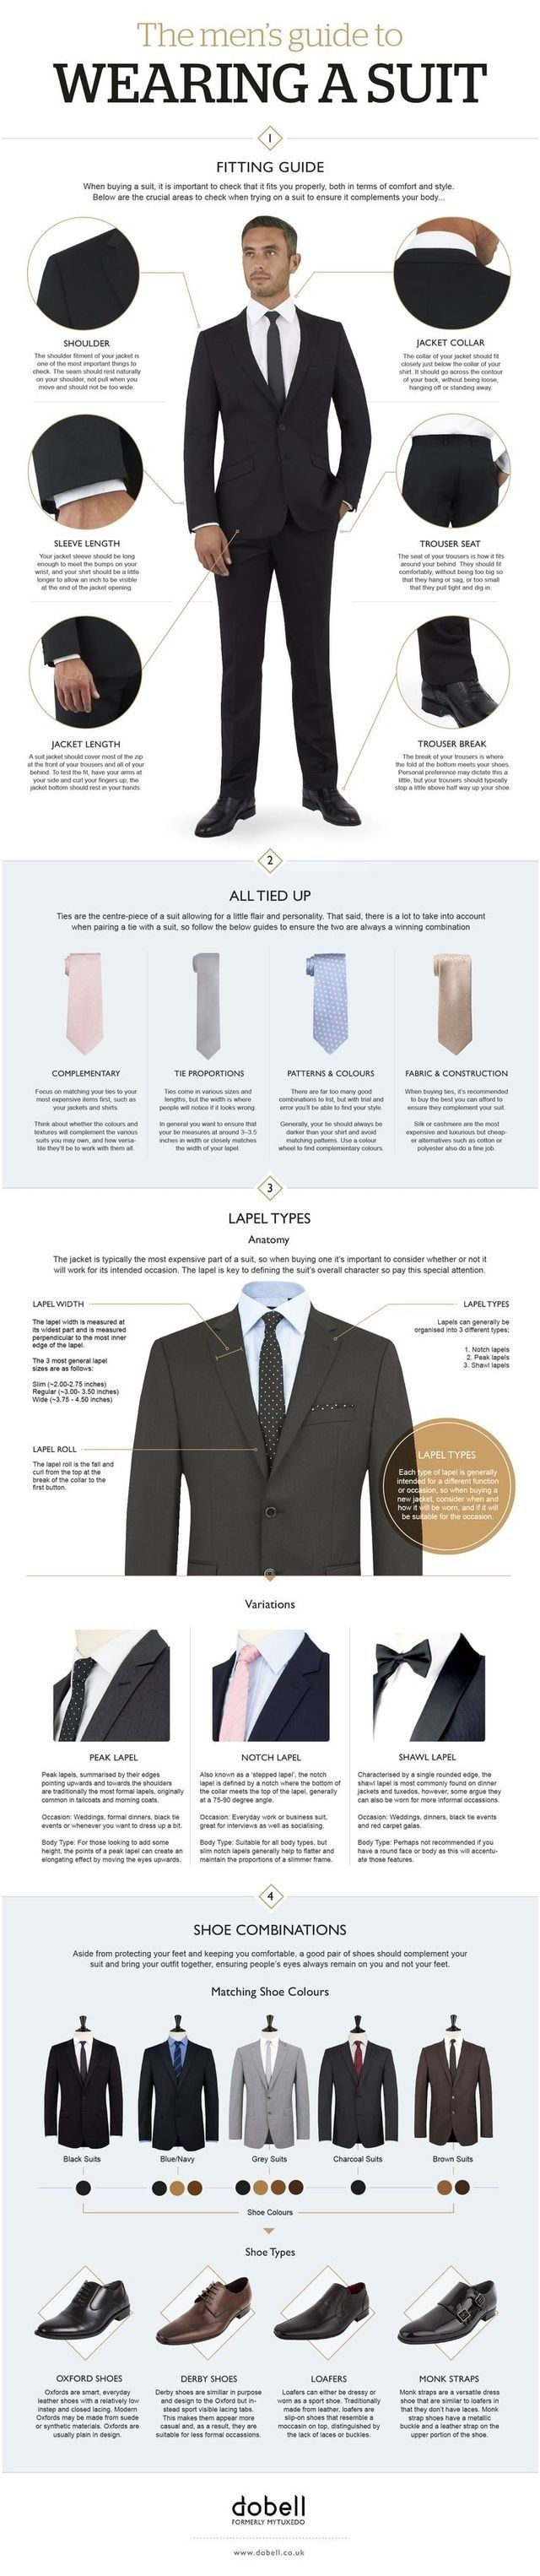 The Men's guide for dressing the suit #men #suit #dapper #infographics #style #fashion #affiliate